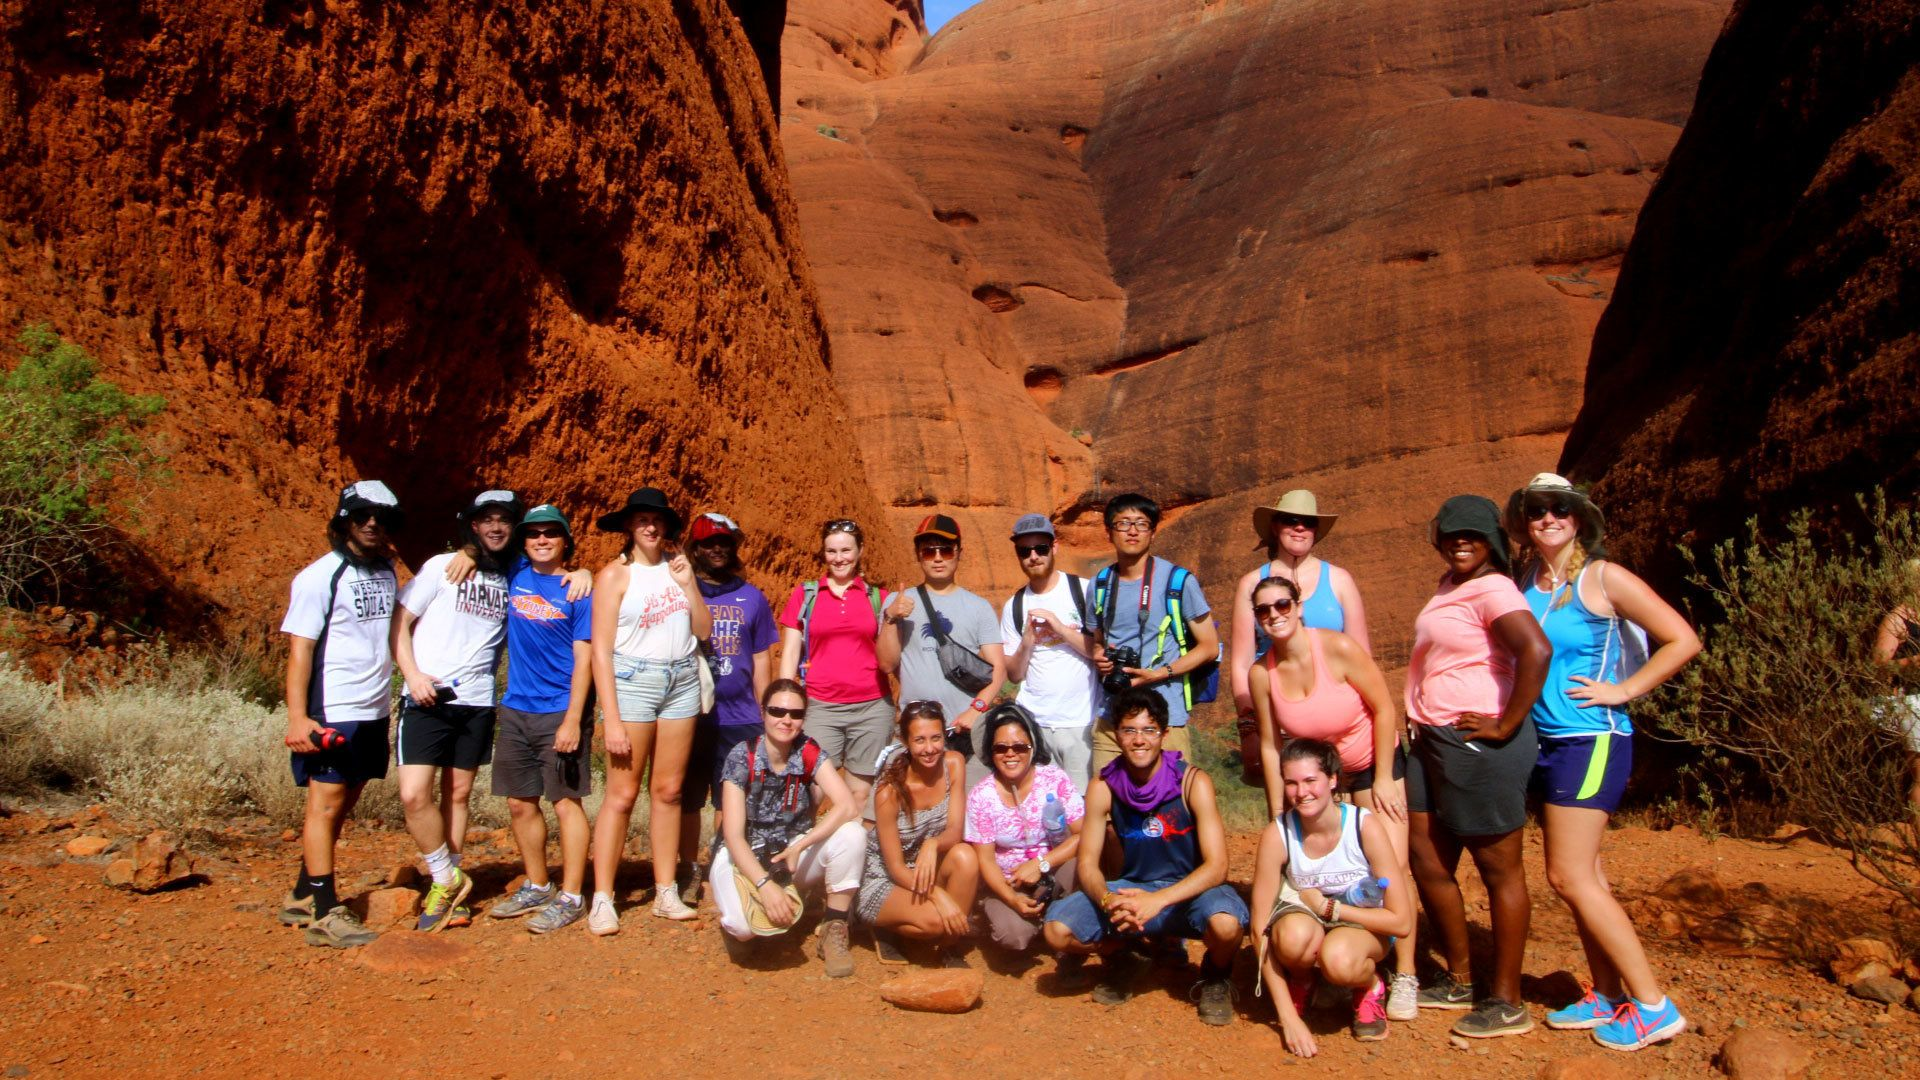 Hiking group in front of large rock formations